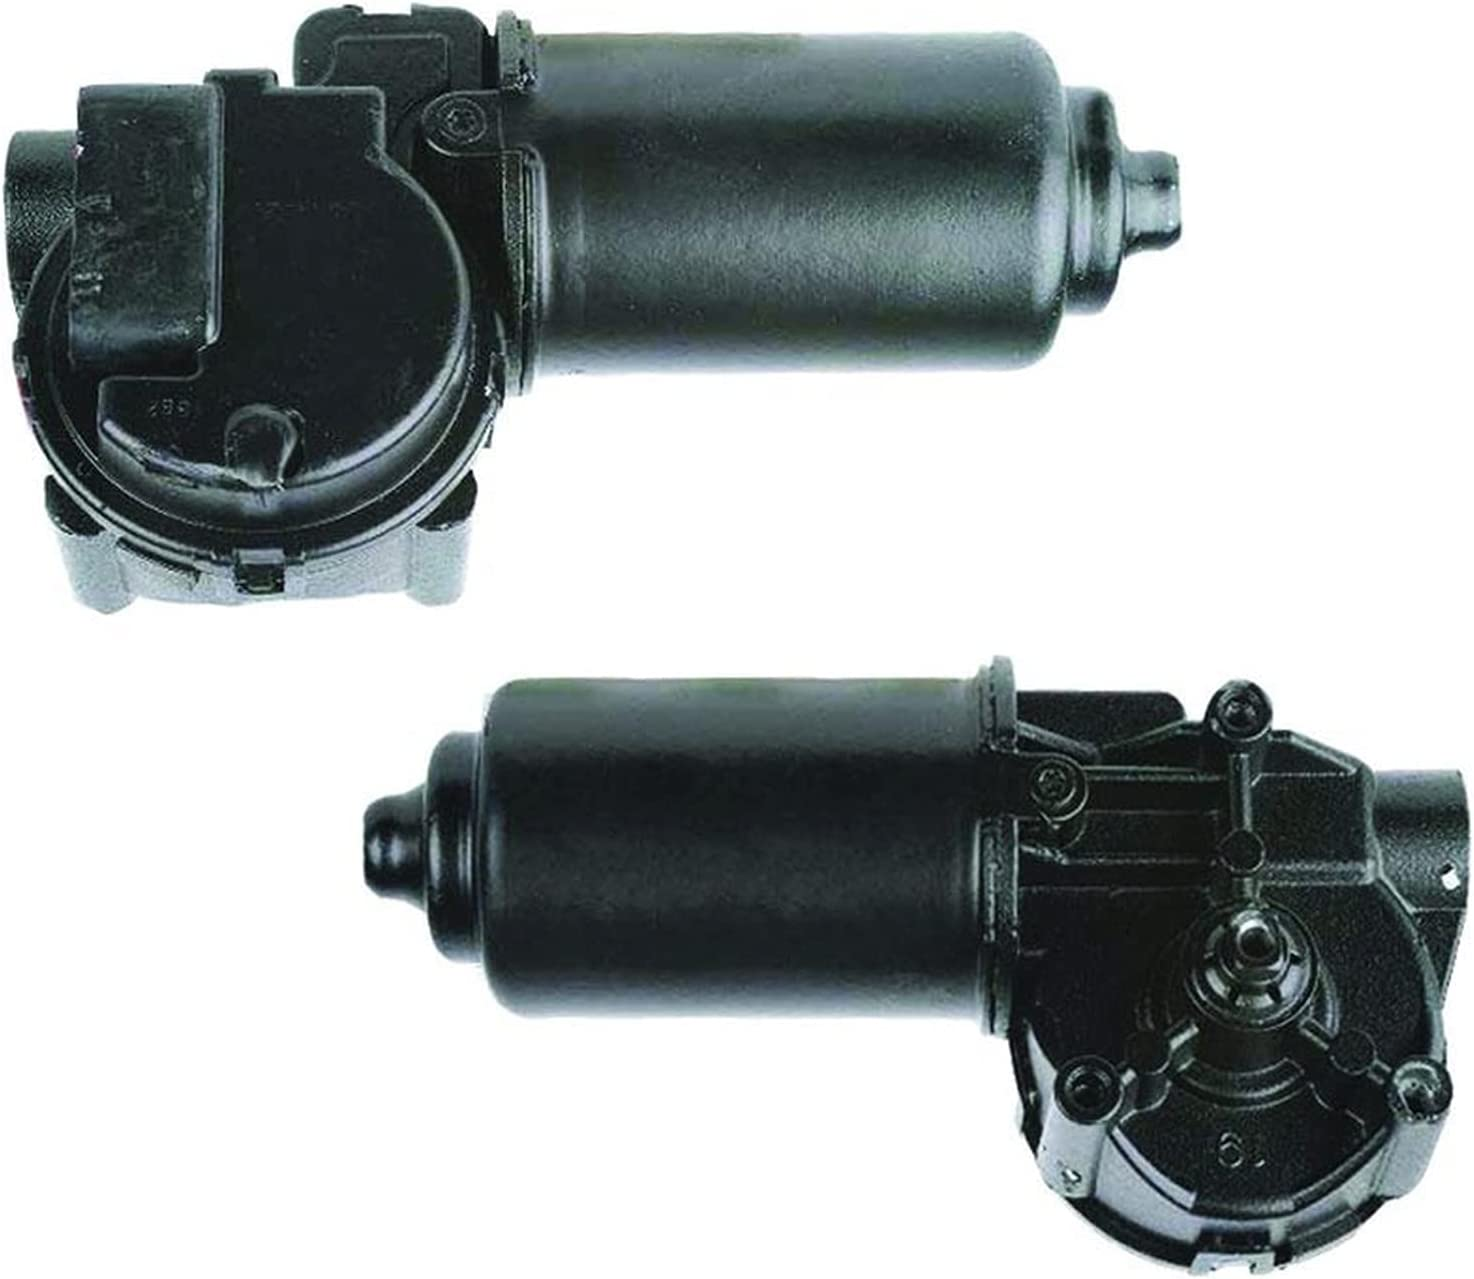 New Front Our shop OFFers the best service Wiper Motor Replacement Ford Max 66% OFF Lincoln Mer For 2002-2008